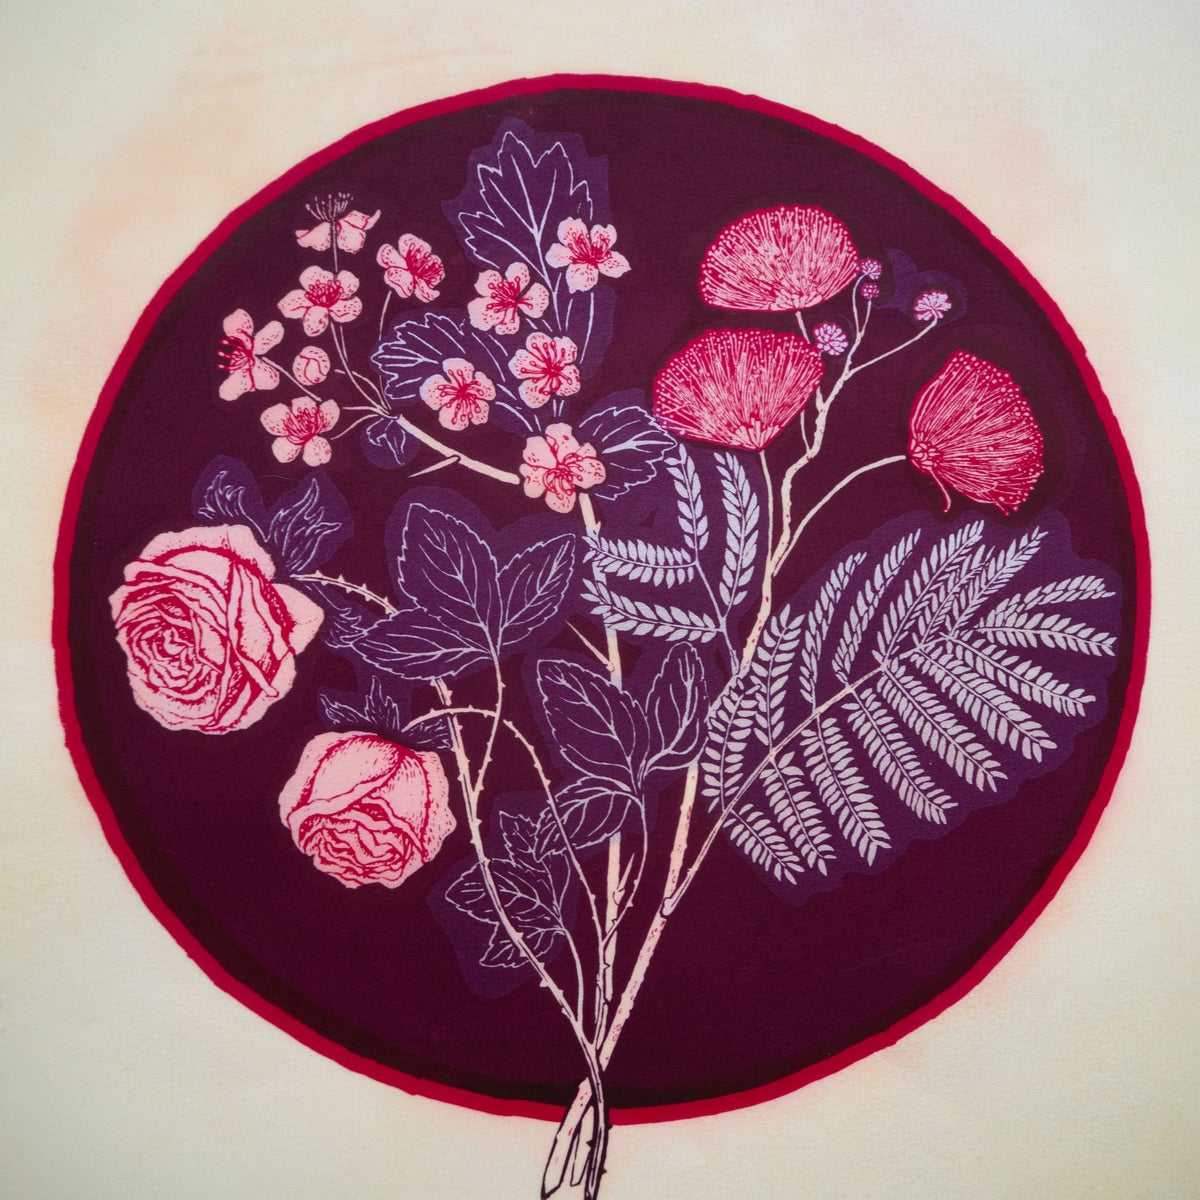 Image of  Three Plants for Grief  & Heartache: Rose, Mimosa, Hawthorn,